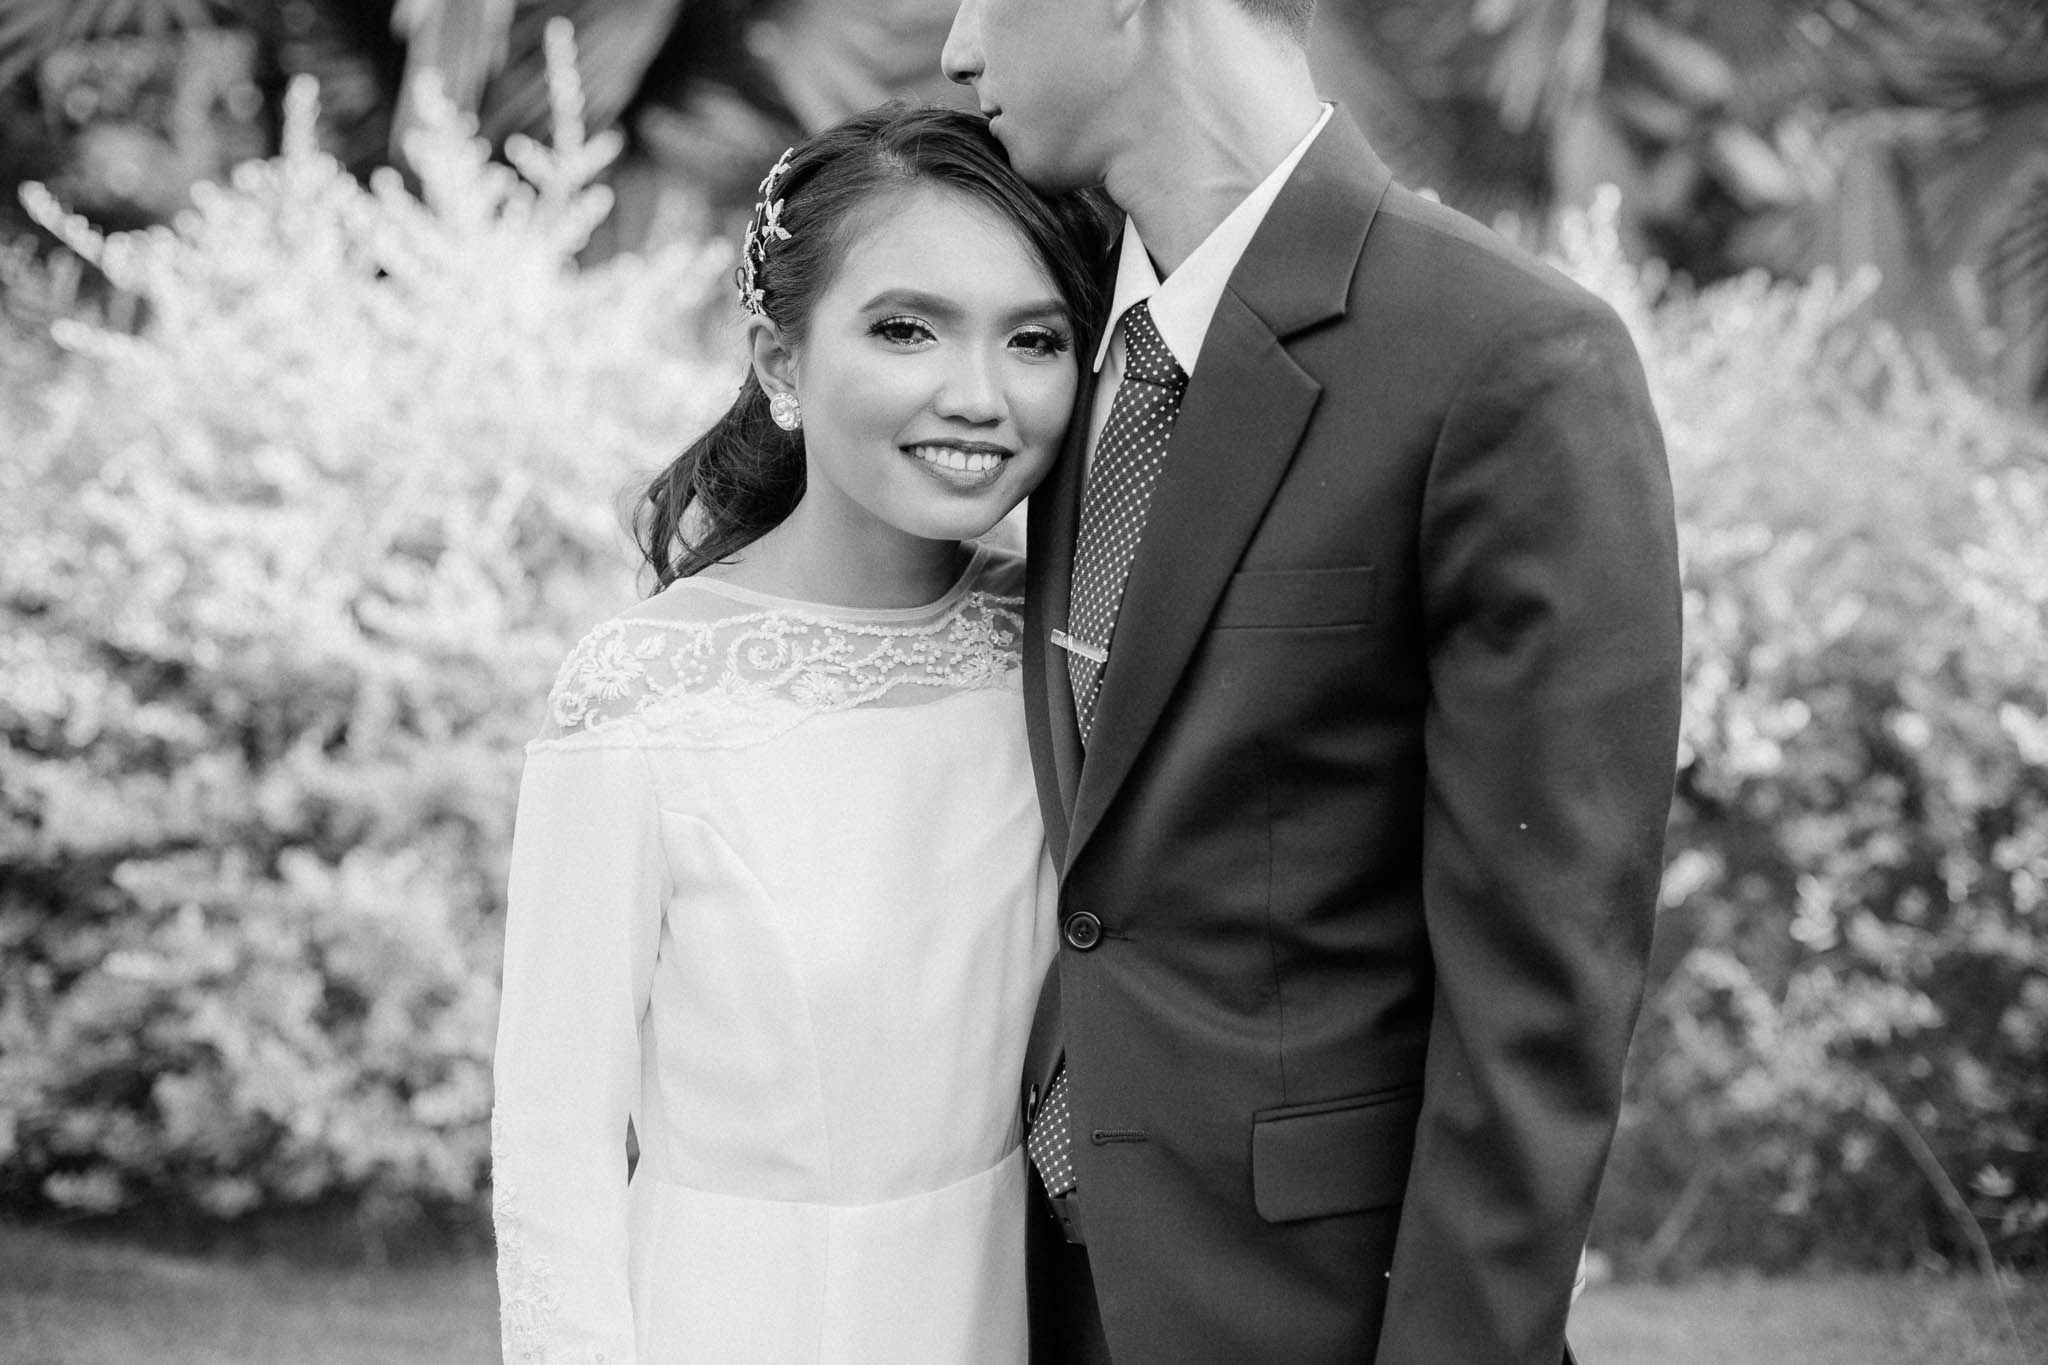 singapore-wedding-photographer-we-made-these-2016-selects-079.jpg